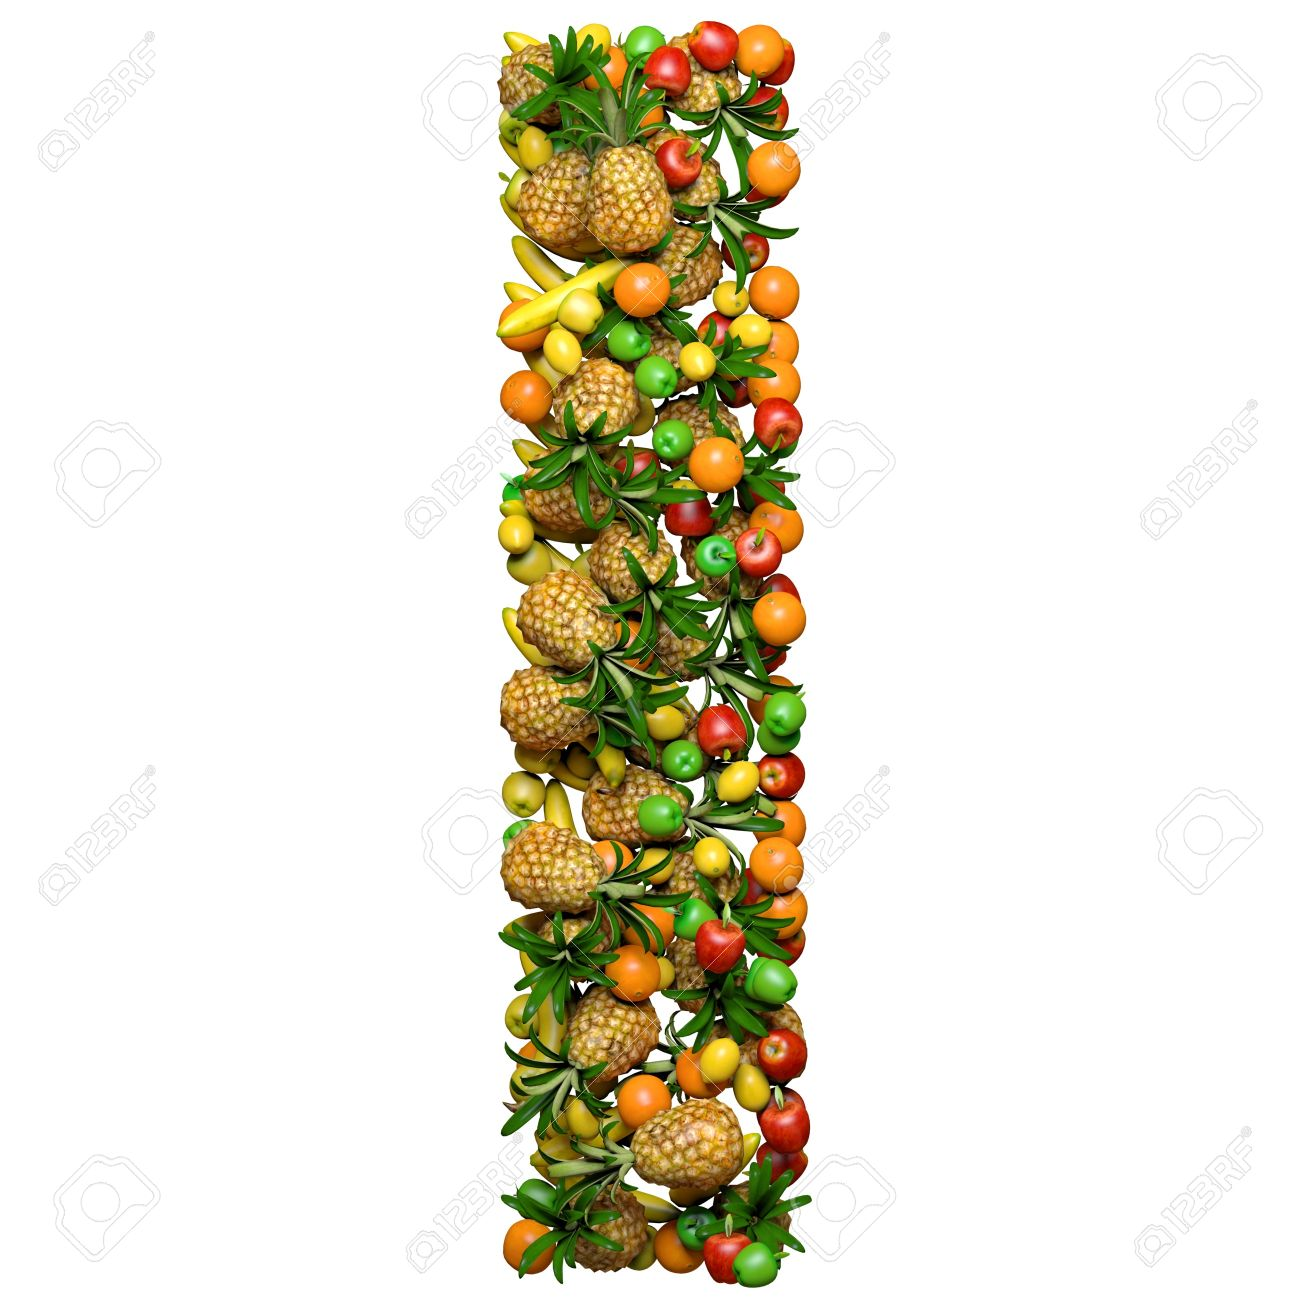 Foods 3d Stock Photos & Pictures. Royalty Free Foods 3d Images And ...